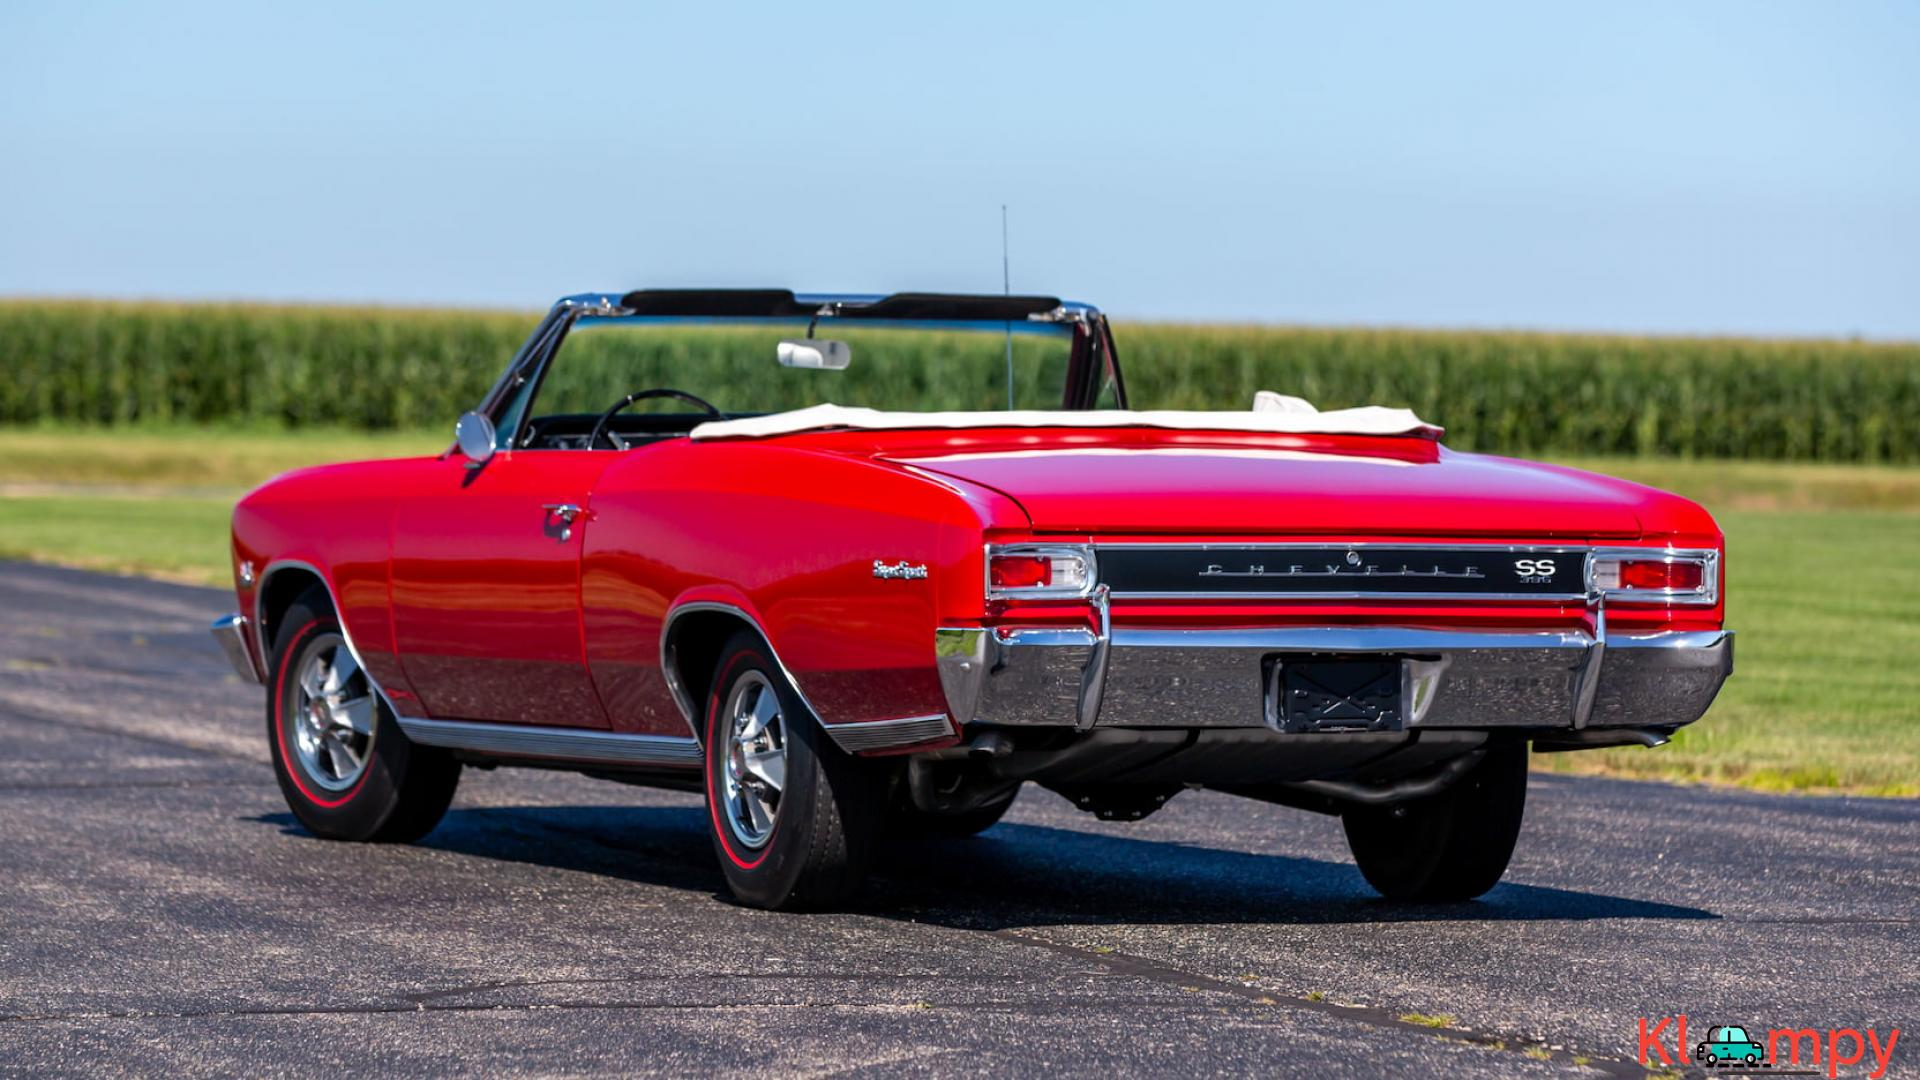 1966 Chevrolet Chevelle SS Convertible - 4/15